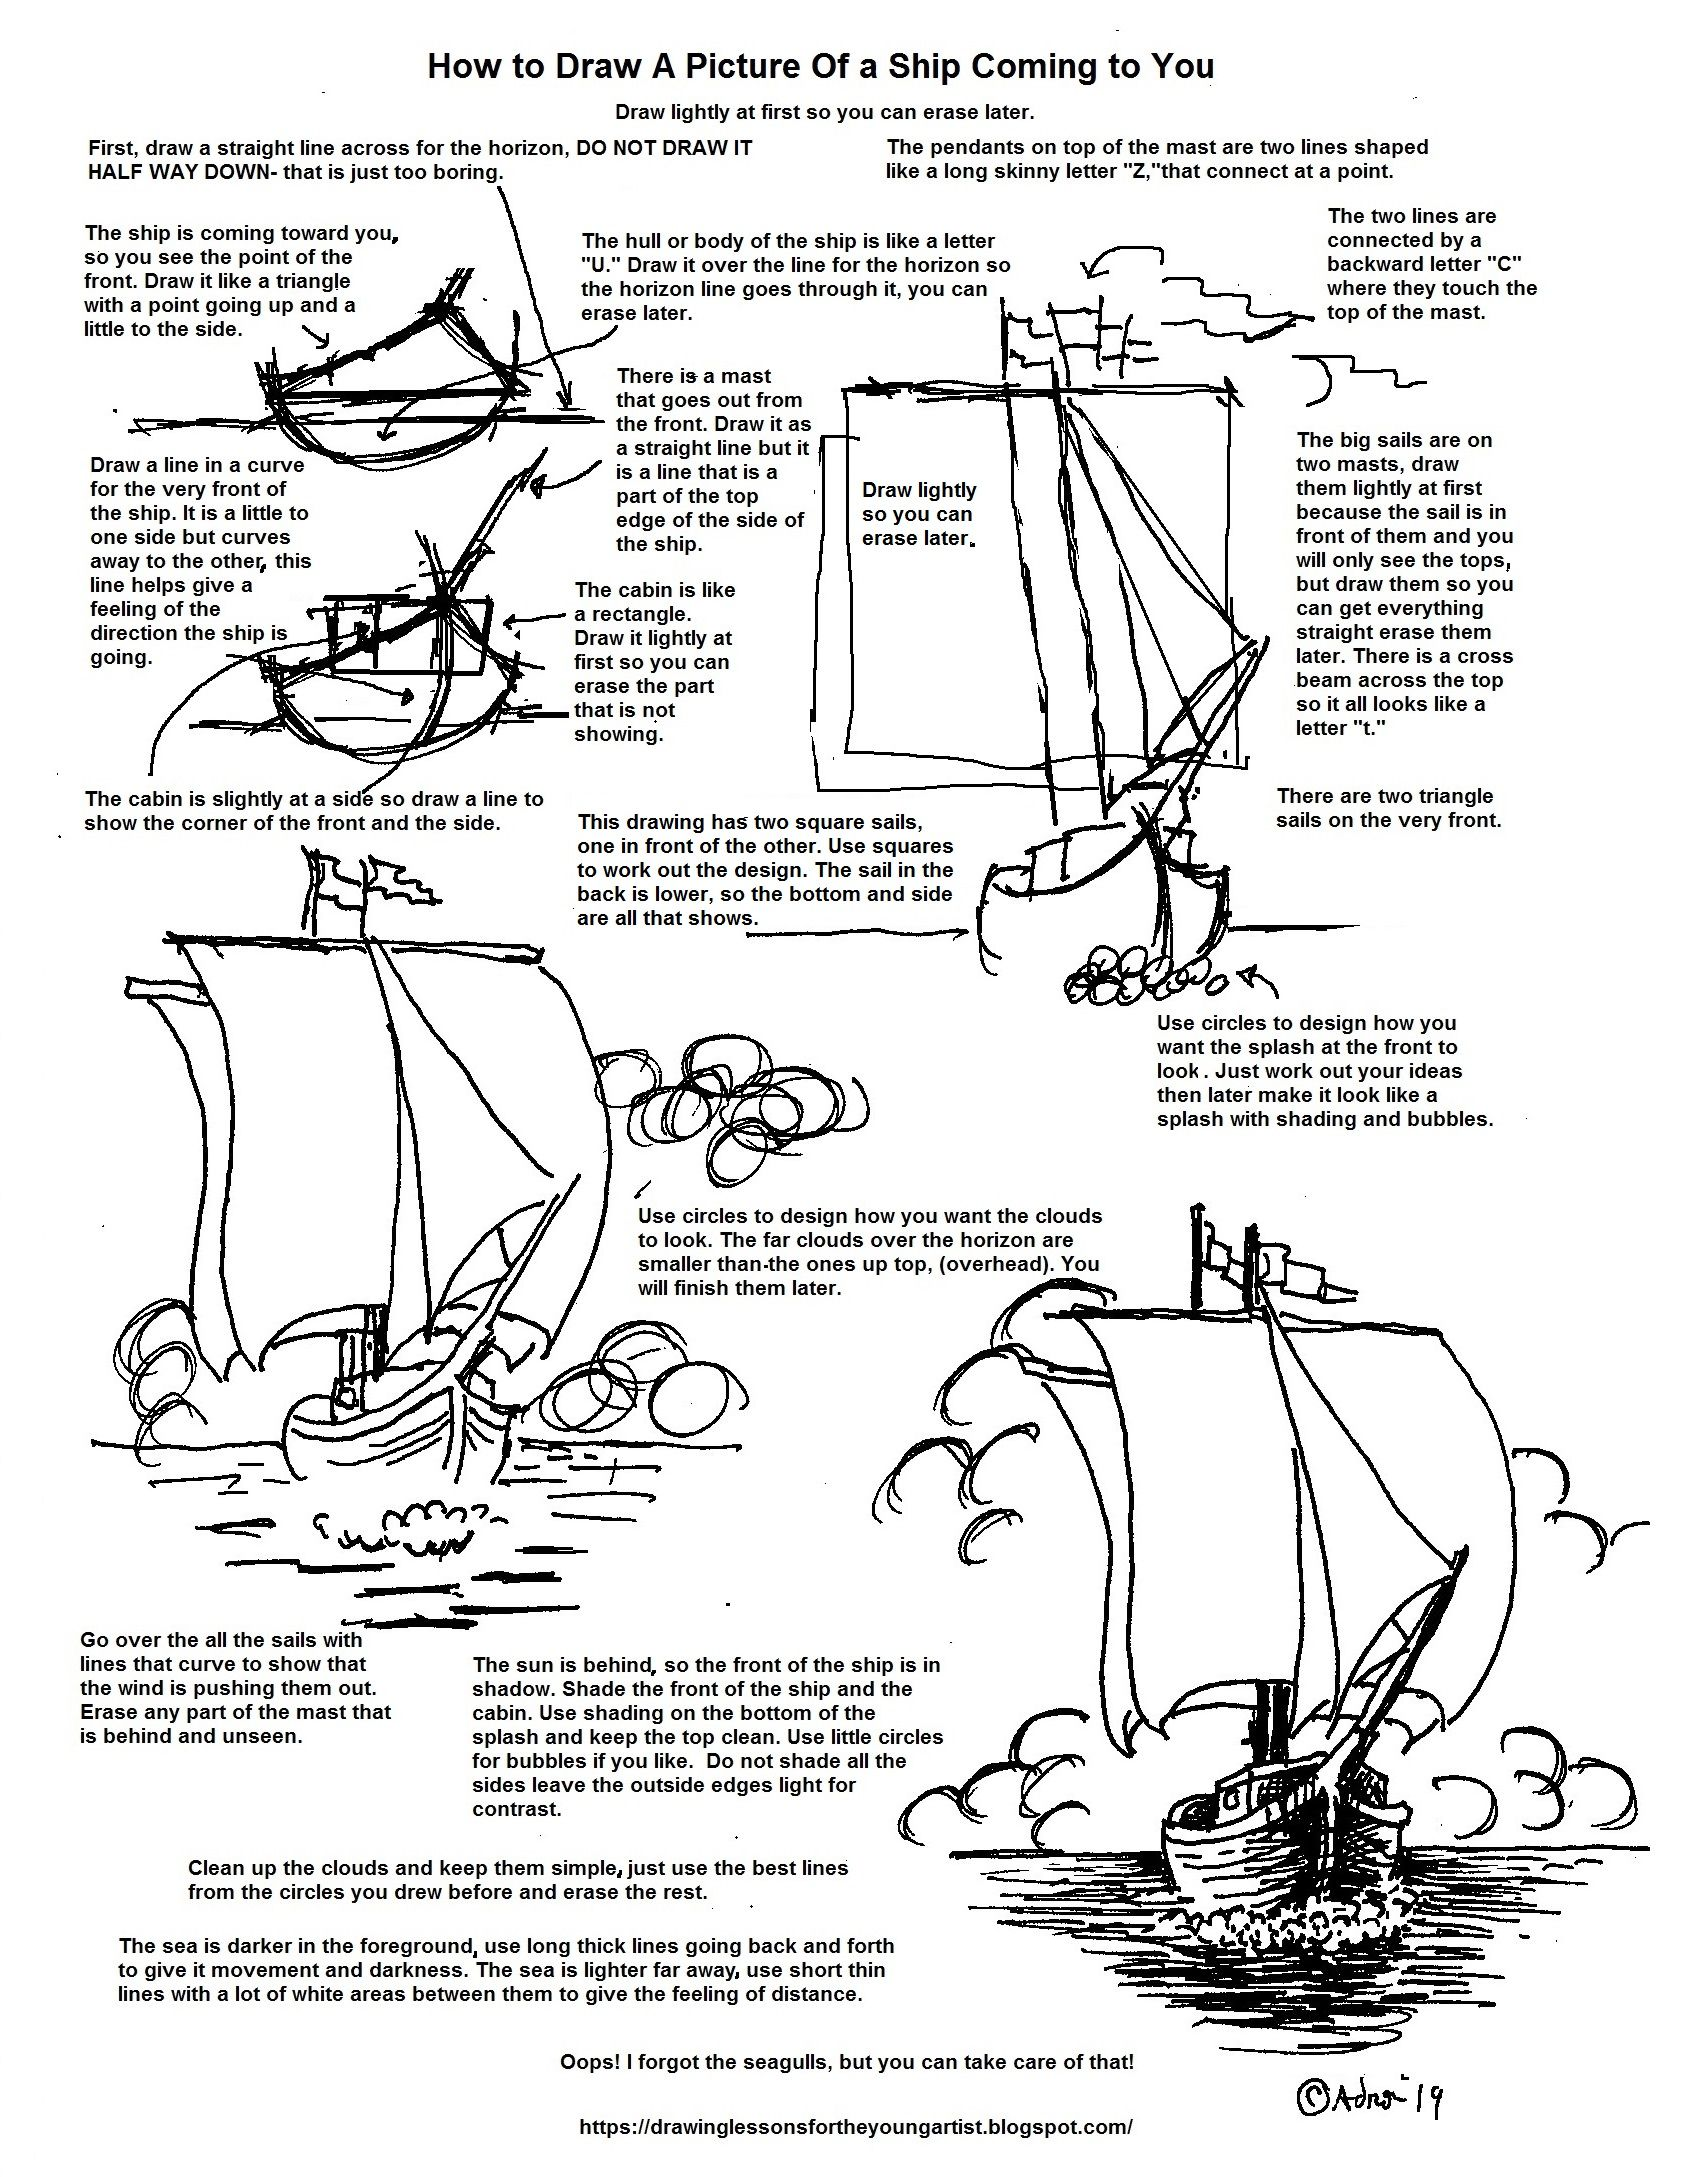 Printable How To Draw A Picture Of A Ship Coming To You